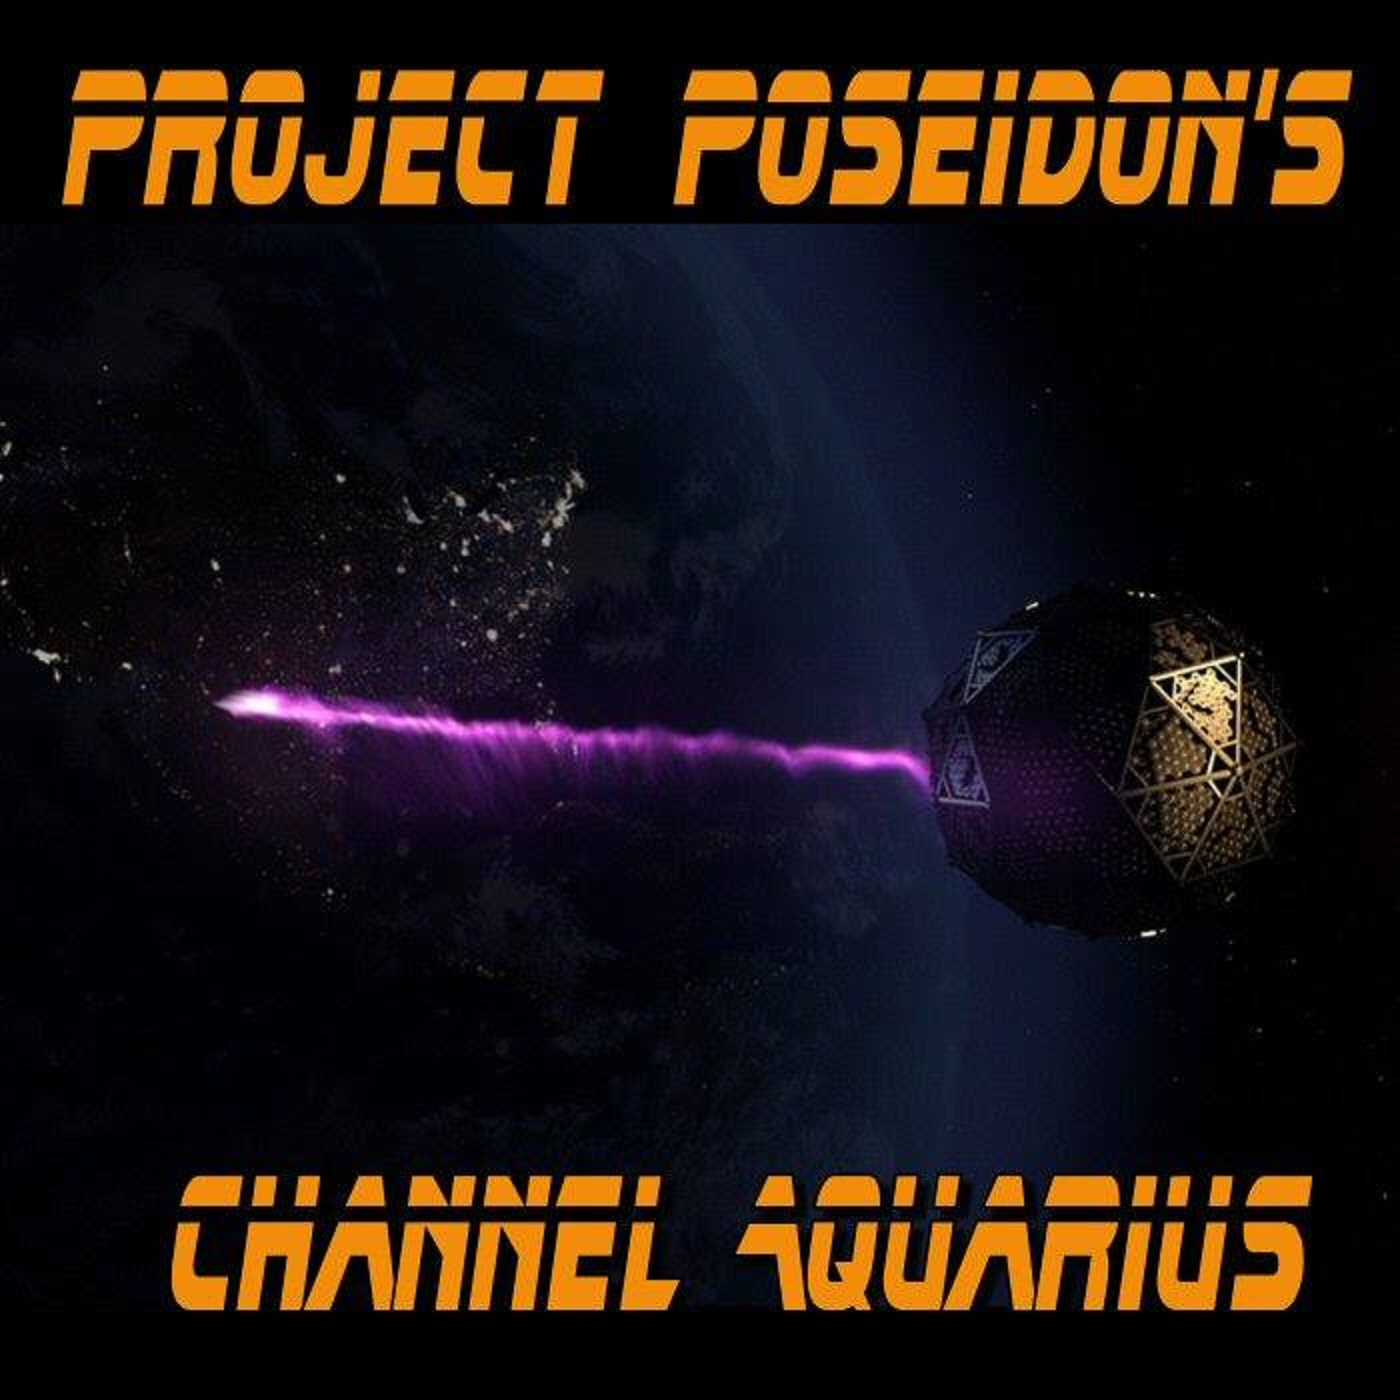 Project Poseidon's Channel Aquarius